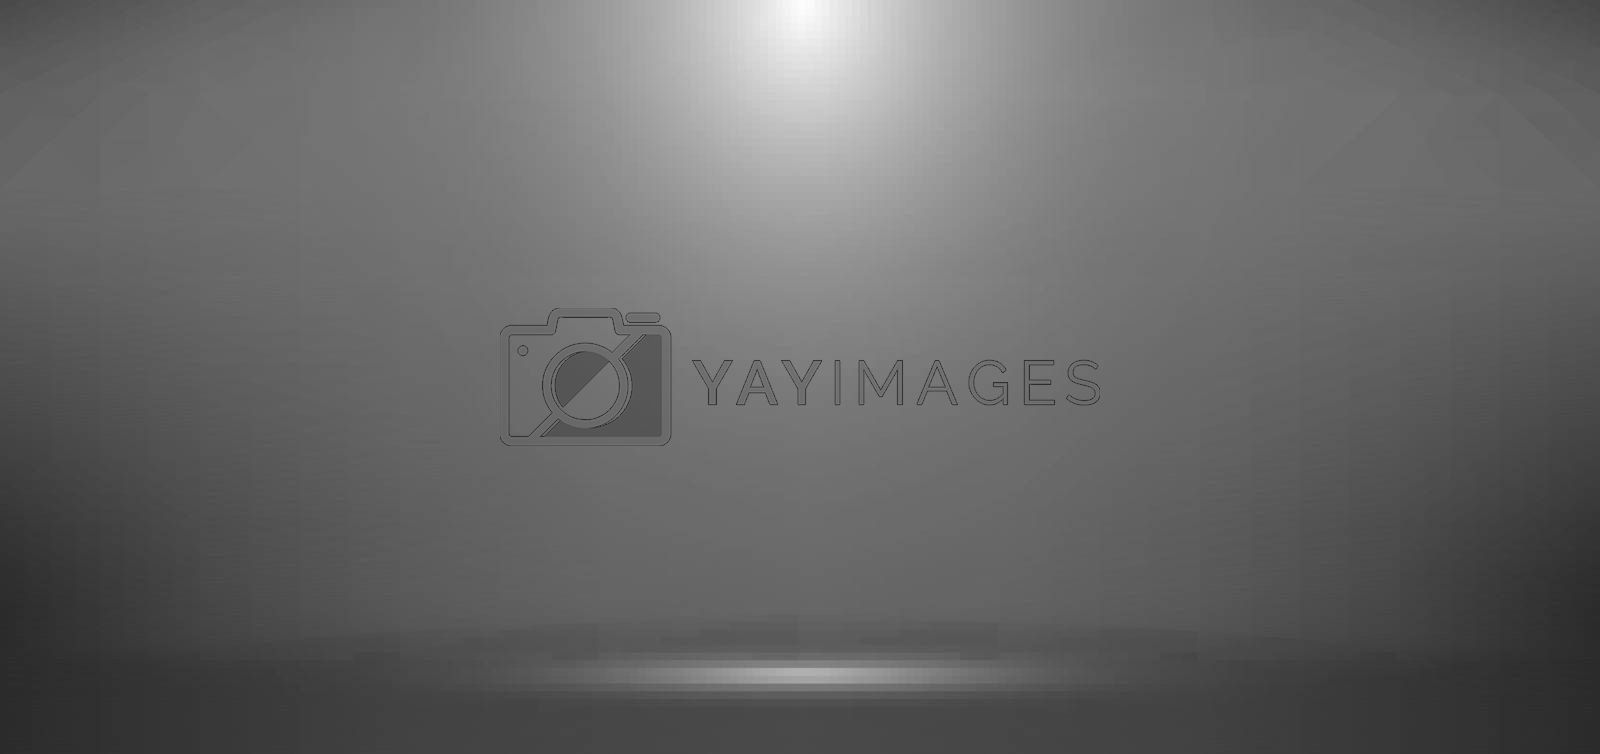 3D empty gray studio room background with spotlight on stage background. Display your product or artwork. Vector illustration